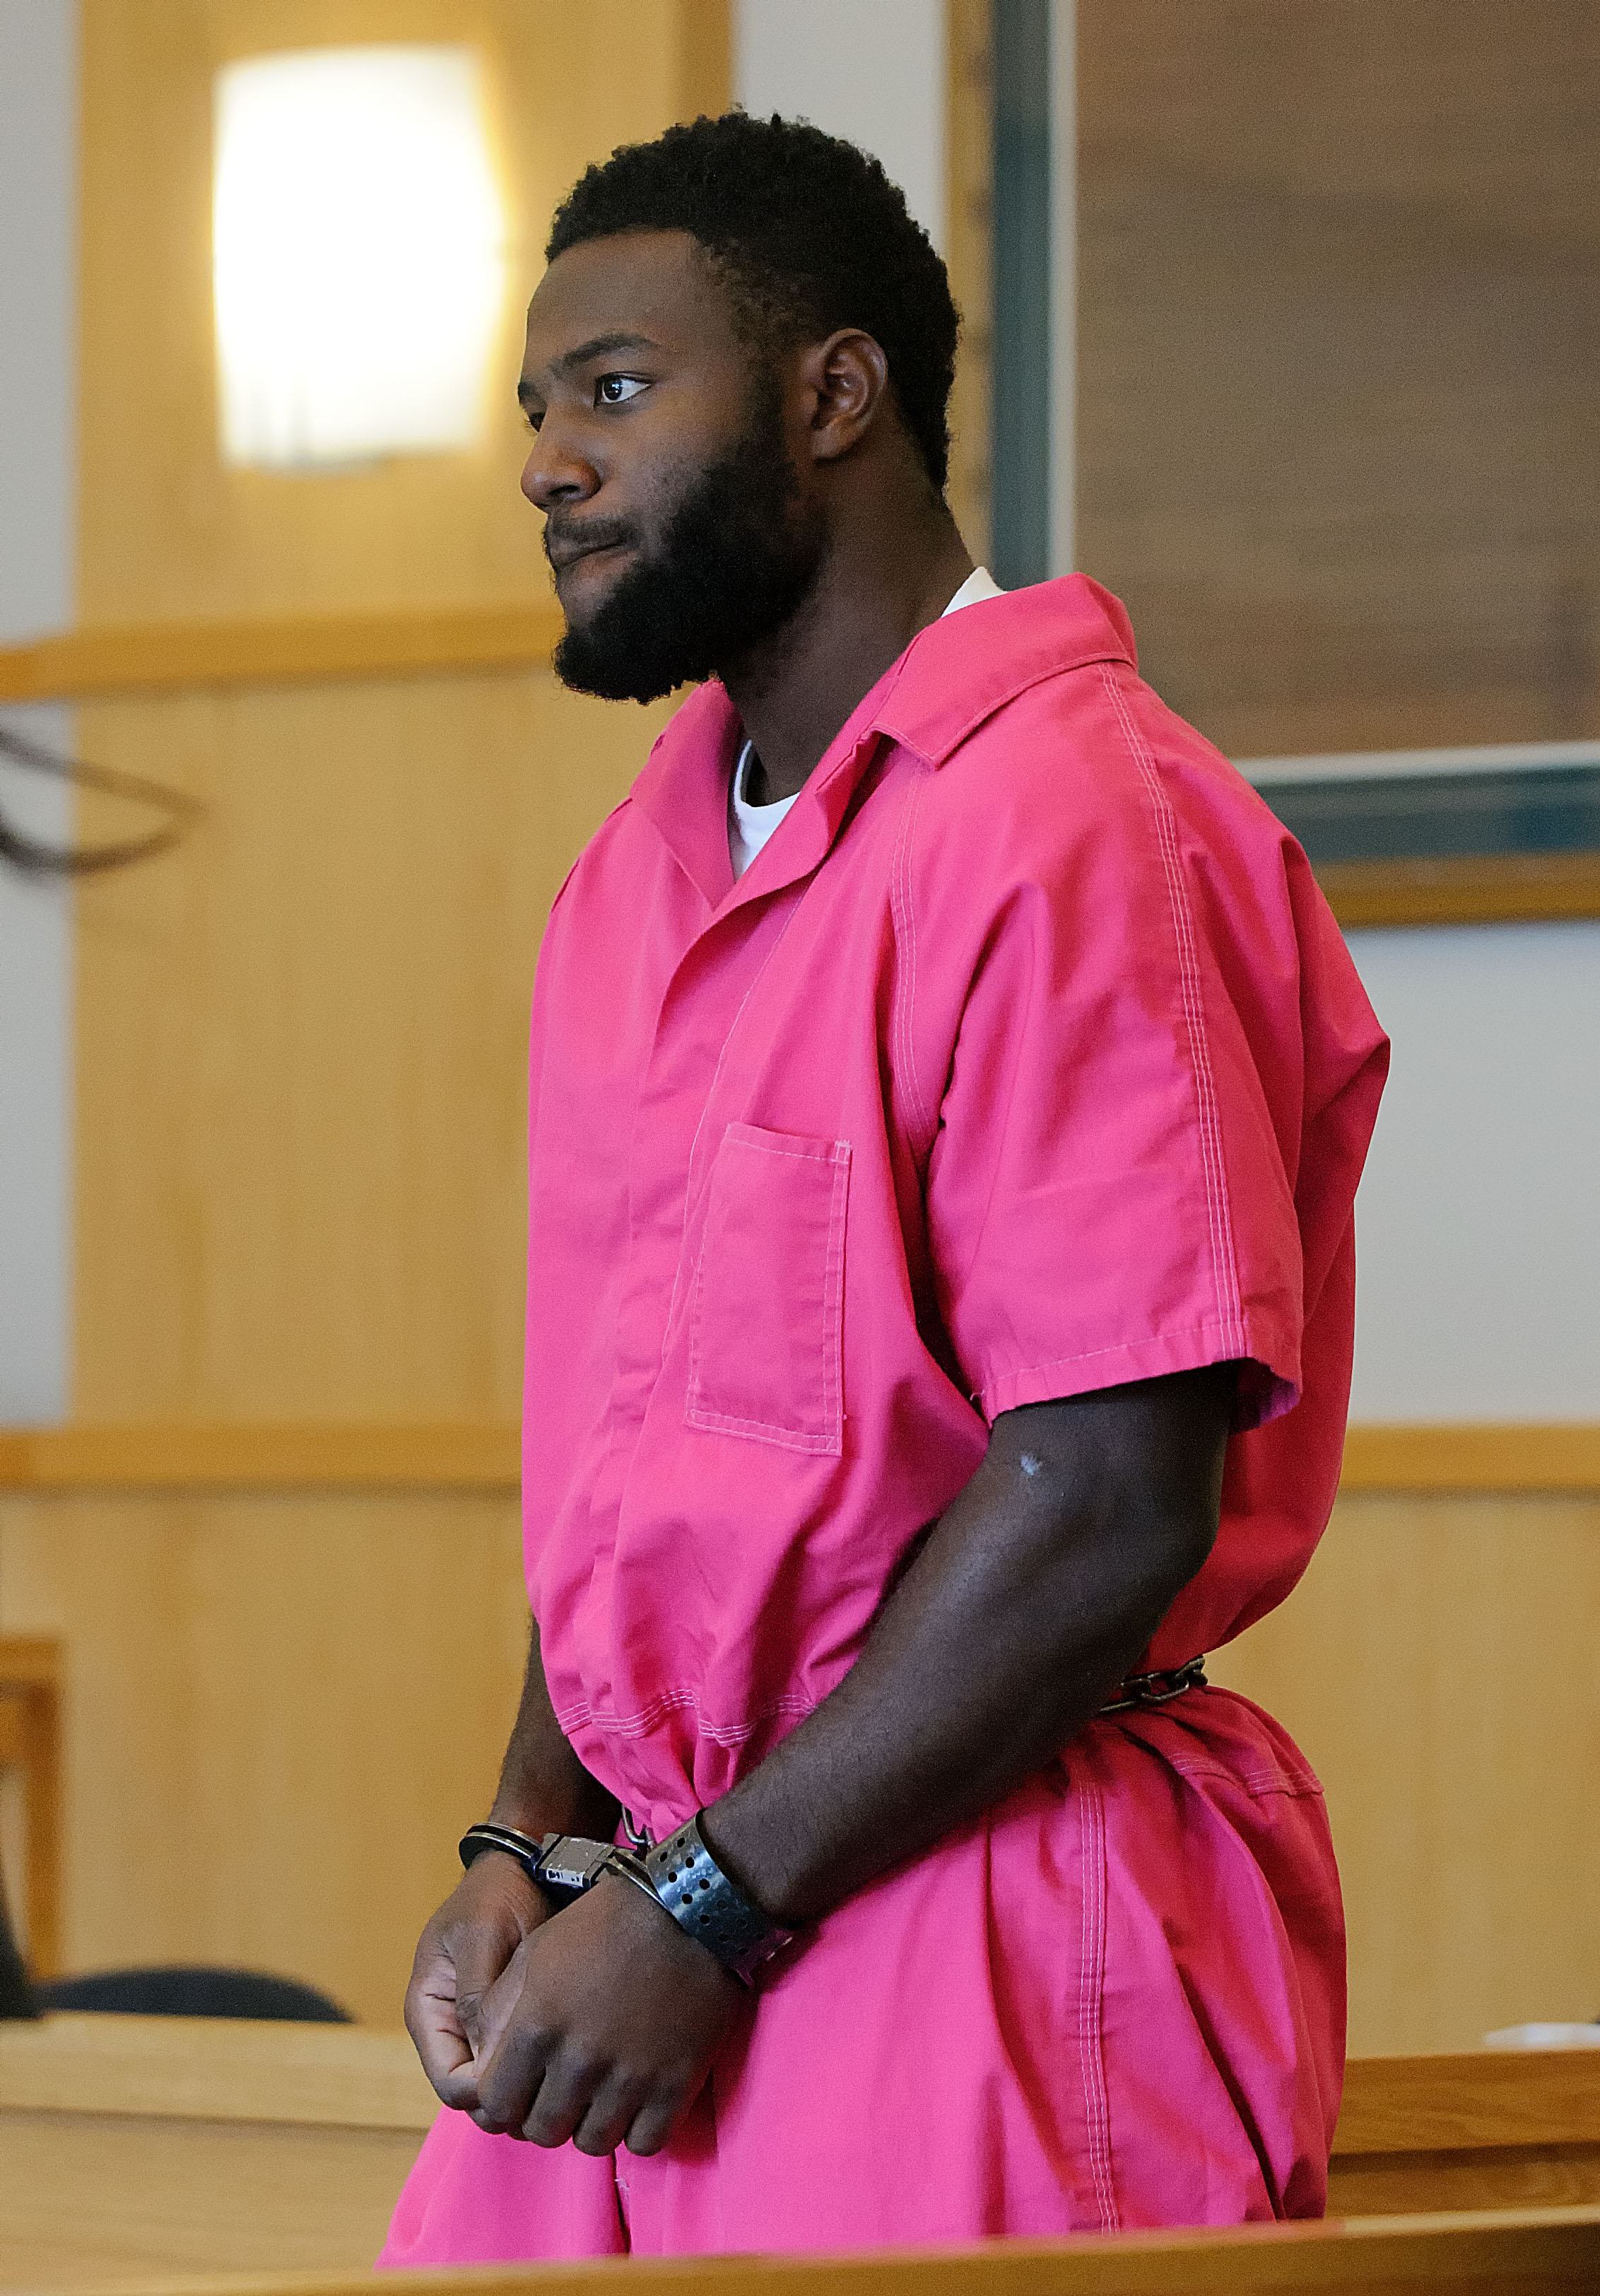 Torrey Green makes his initial appearance in 1st District Court on Tuesday, Oct. 25, 2016, in Logan, Utah. Green who played football at Utah State University has been charged with aggravated kidnapping, forcible sexual abuse, and four counts of rape. (Eli Lucero/Herald Journal)